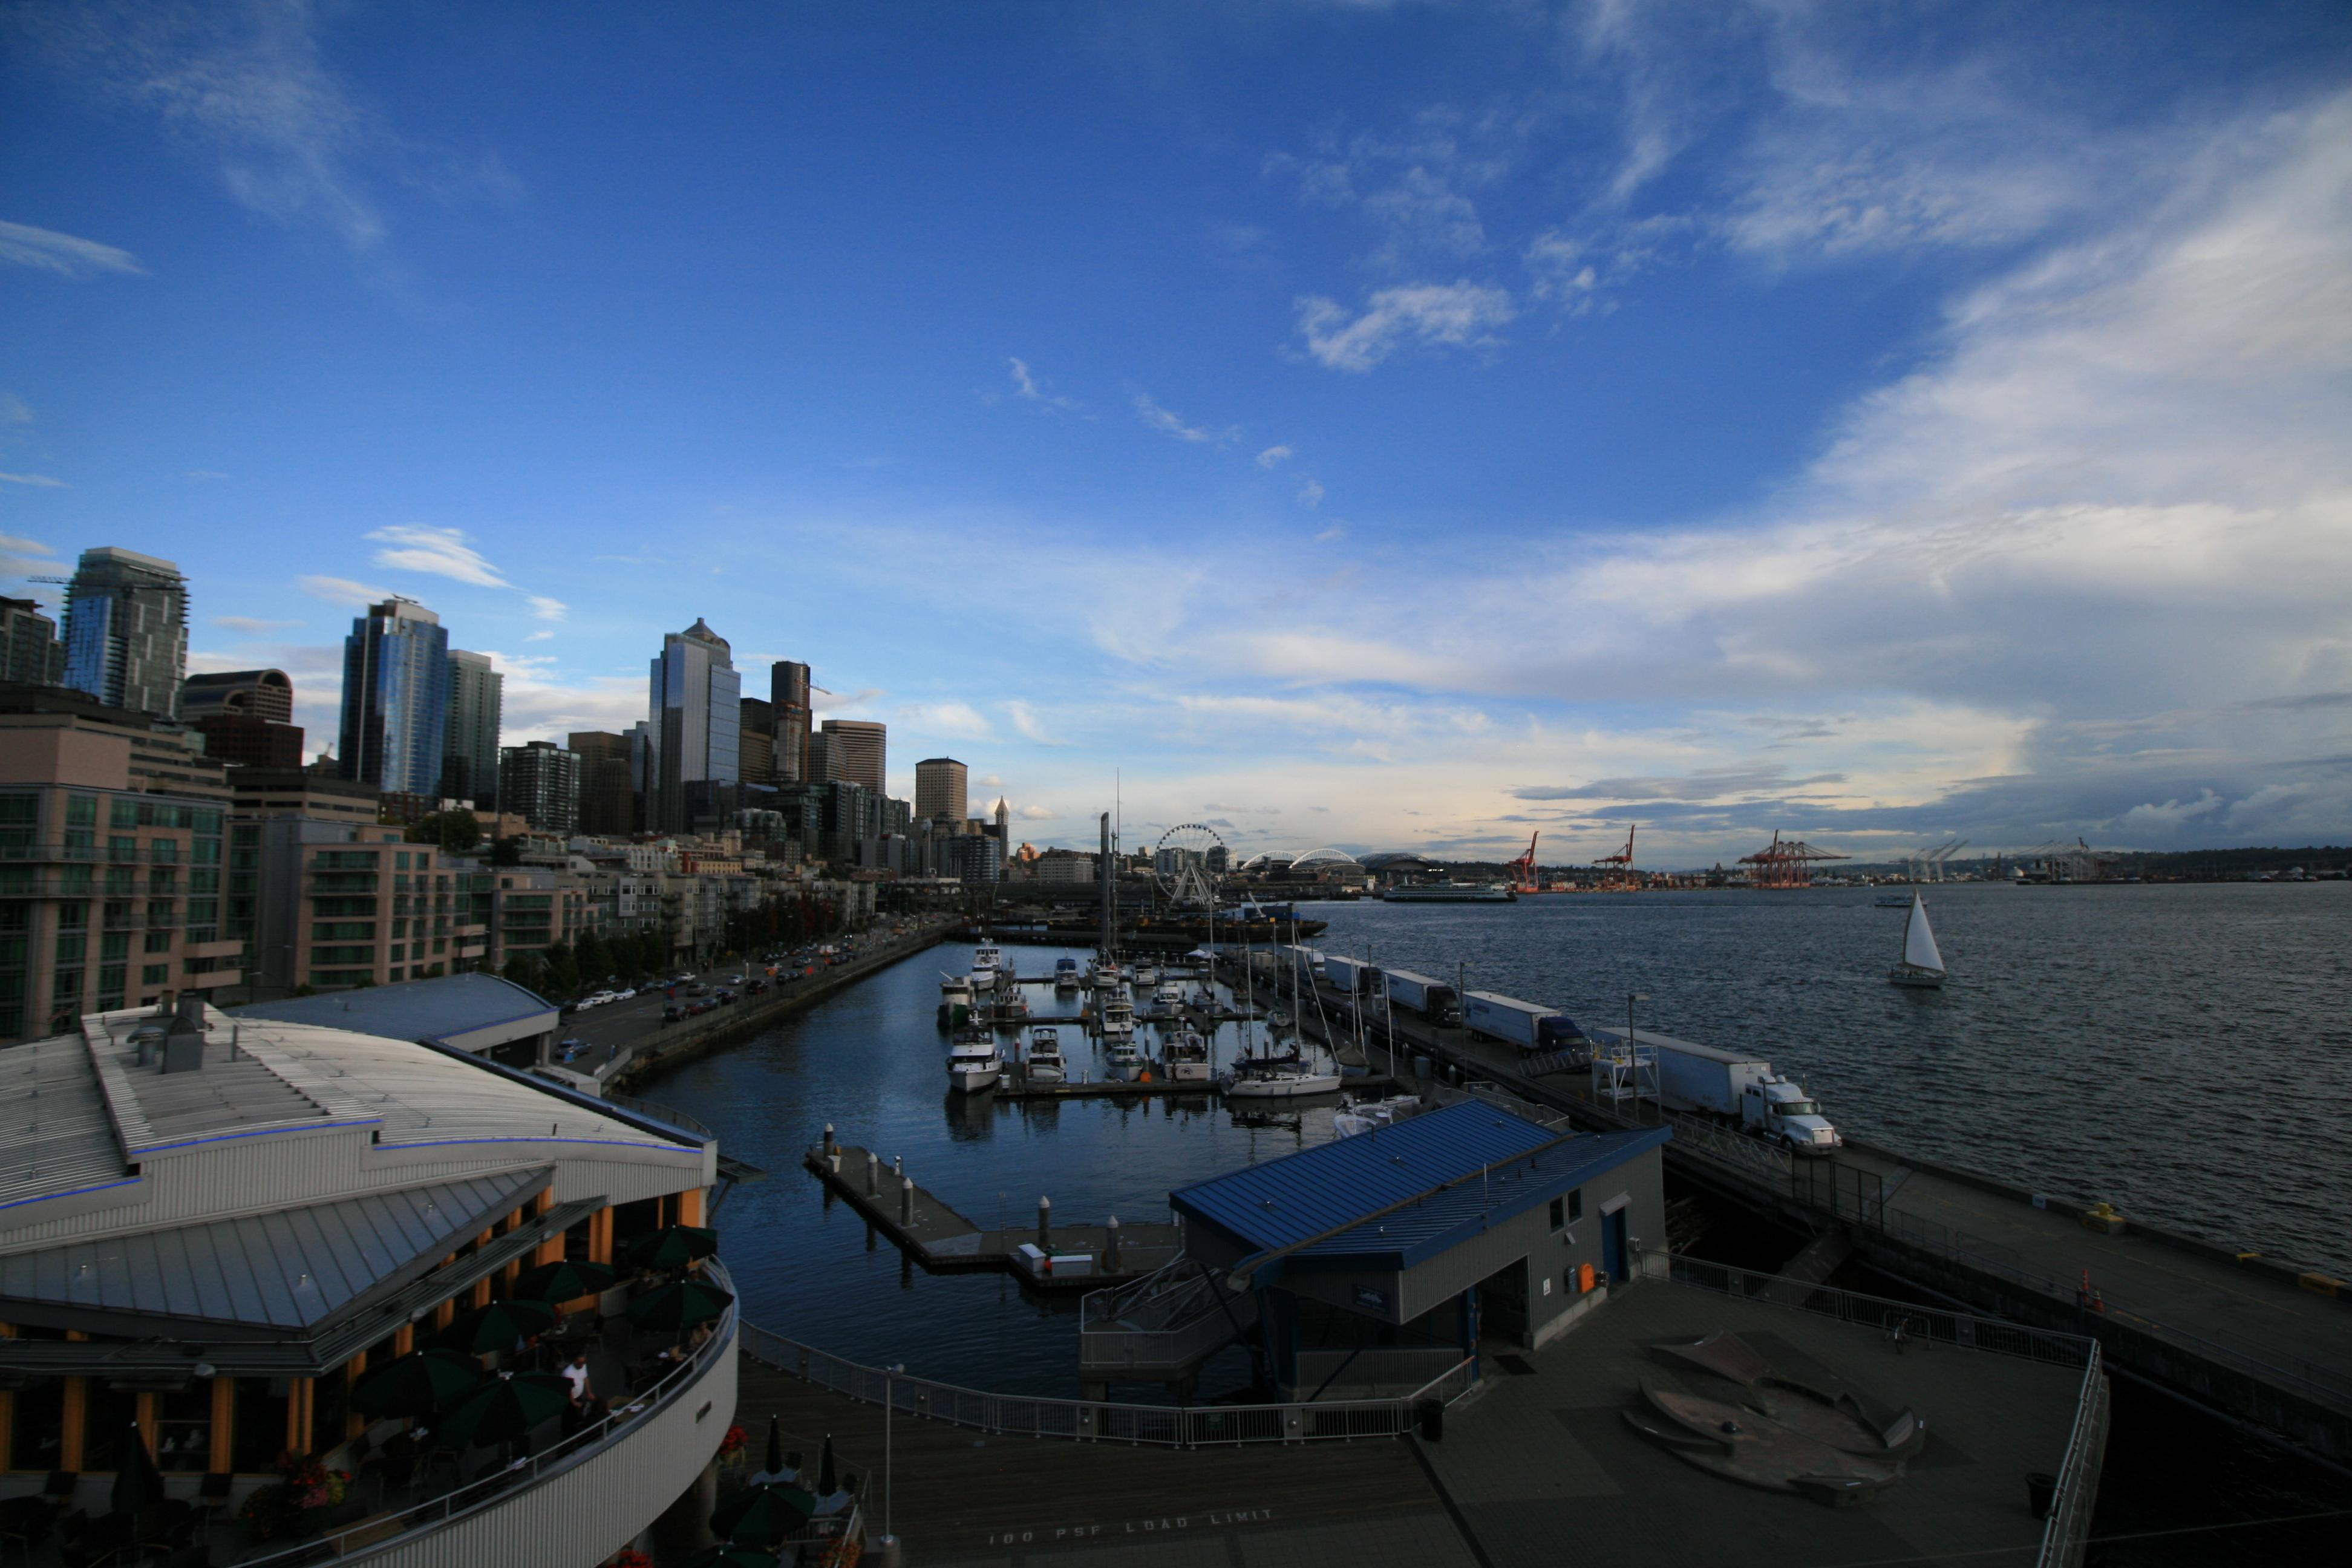 Pier 66 is a dock redeveloped by the Port of Seattle into an urban park and cruise ship terminal. (Image: Elizabeth Blanton / Seattle Refined)